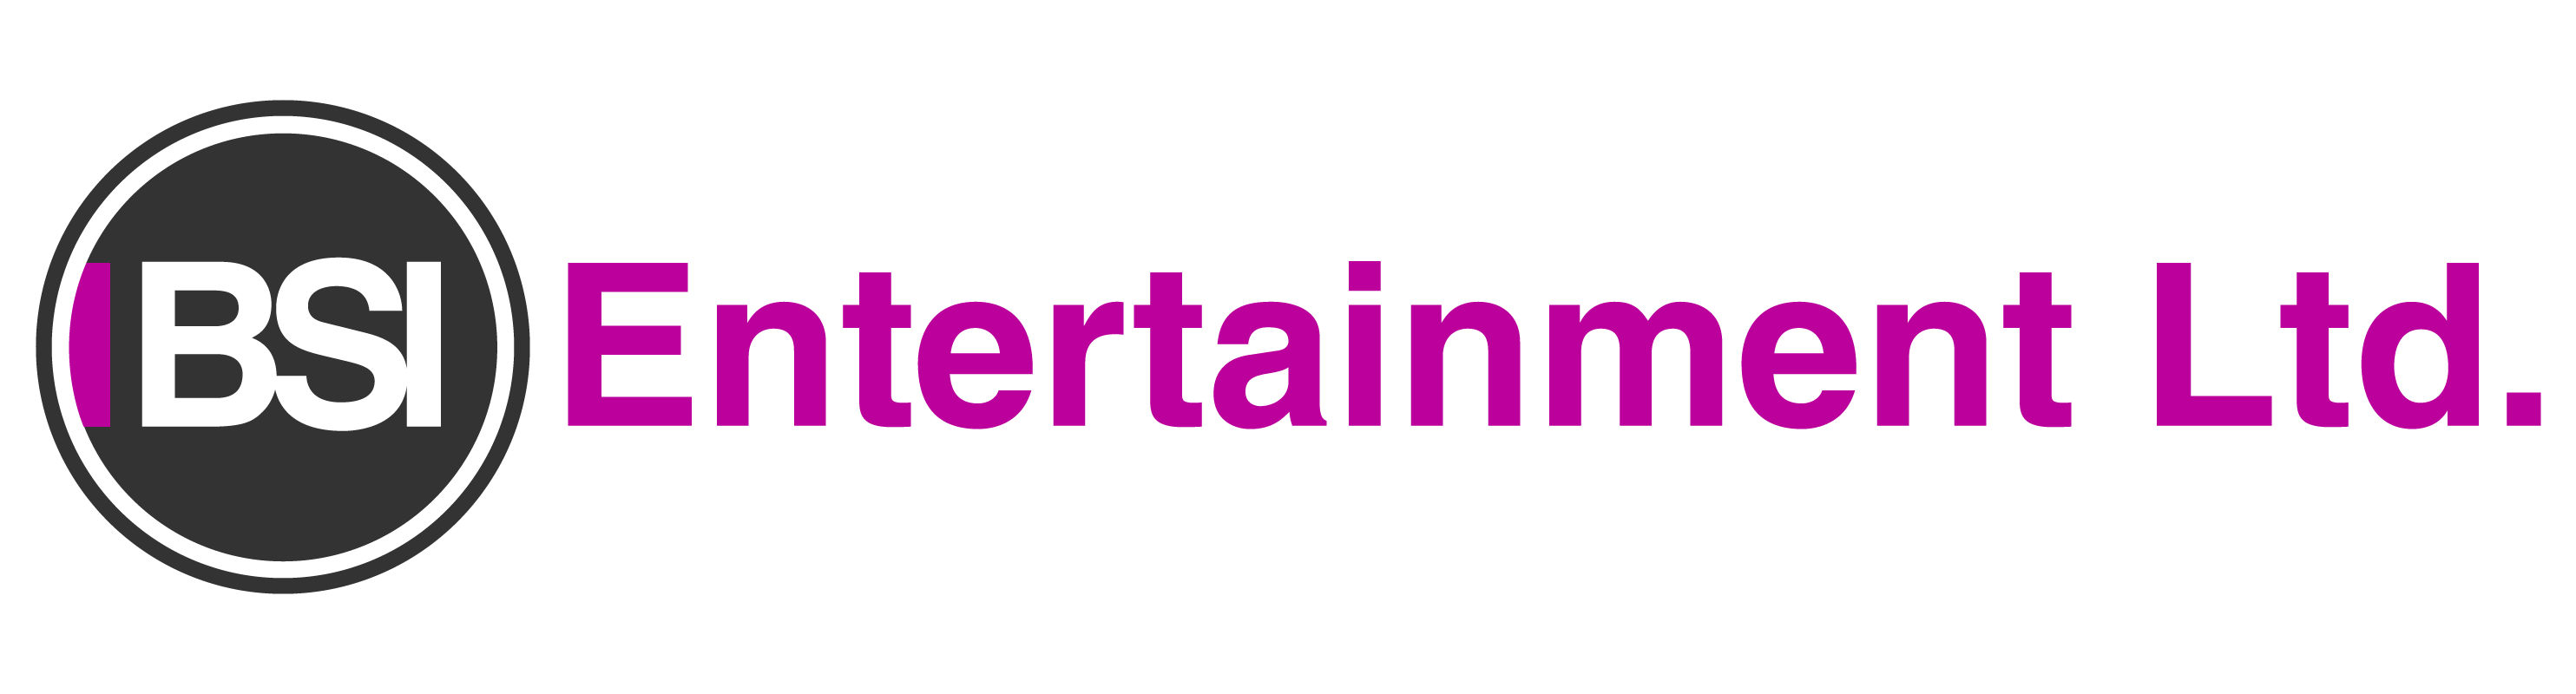 54491a6e00cc24305ec4d1bb_BSI-Entertainment-Ltd-Logo---Long-Version.png